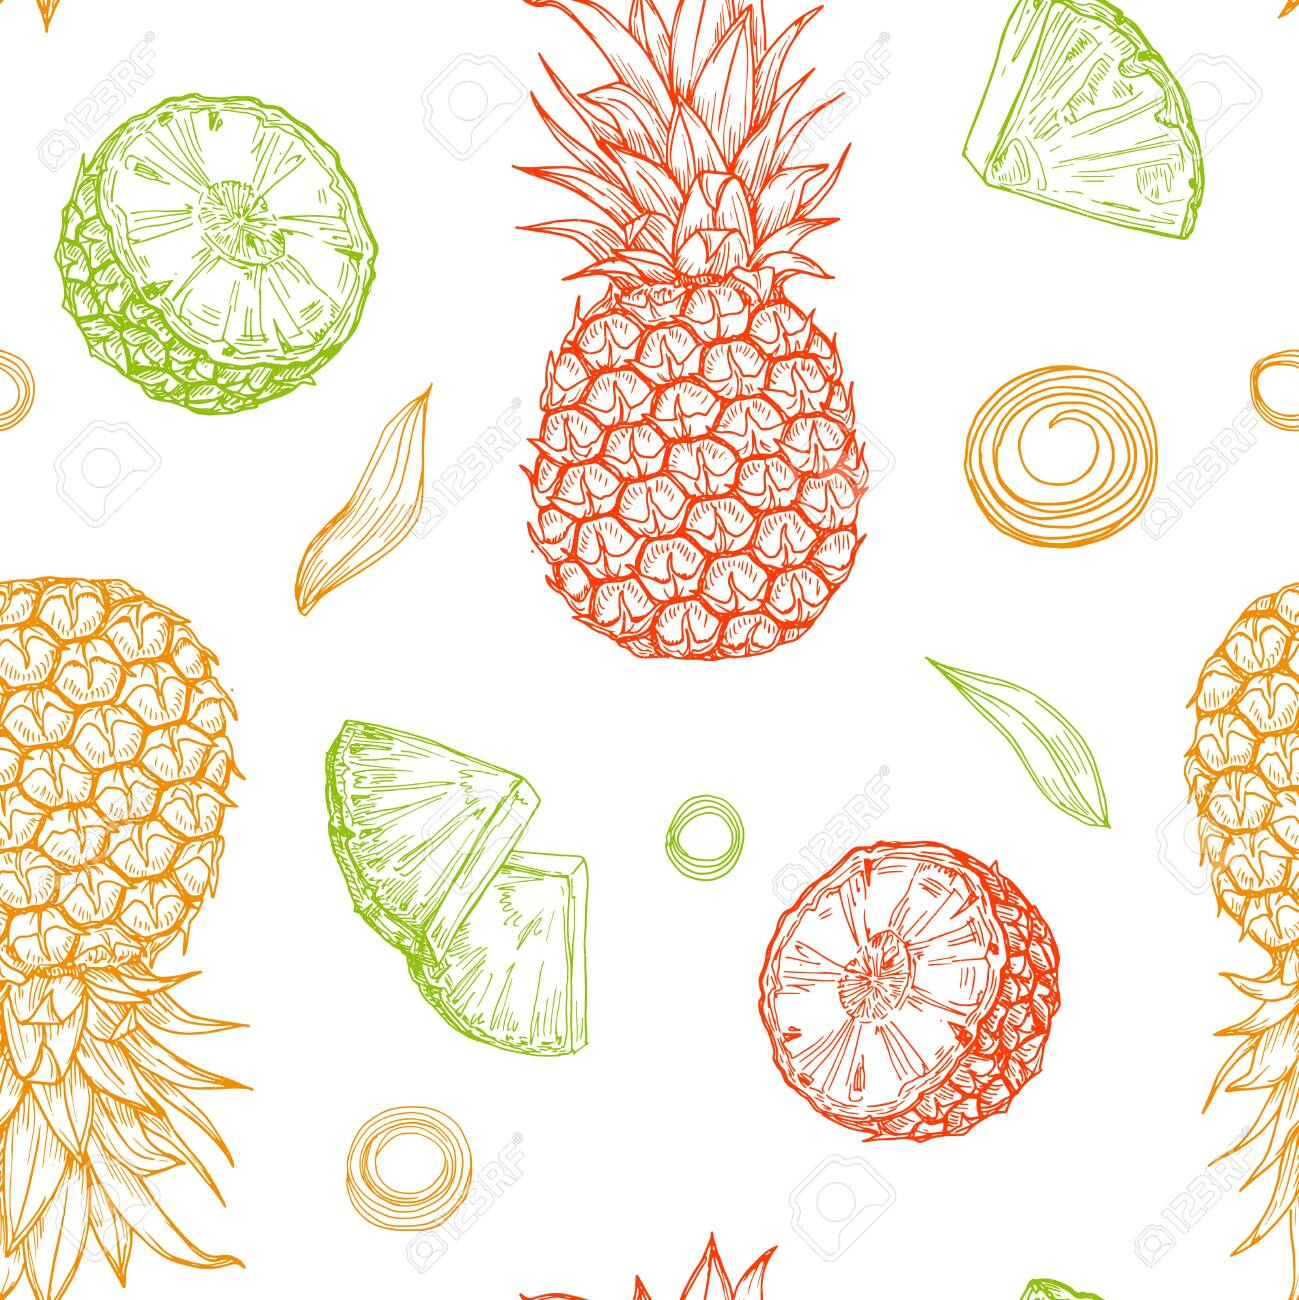 Hand drawn colored isolated pineapples seamless pattern on white background. Sketched abstract vector food illustration. Design element for card, print, template, wallpaper, texture, textile, cover. - 149431257